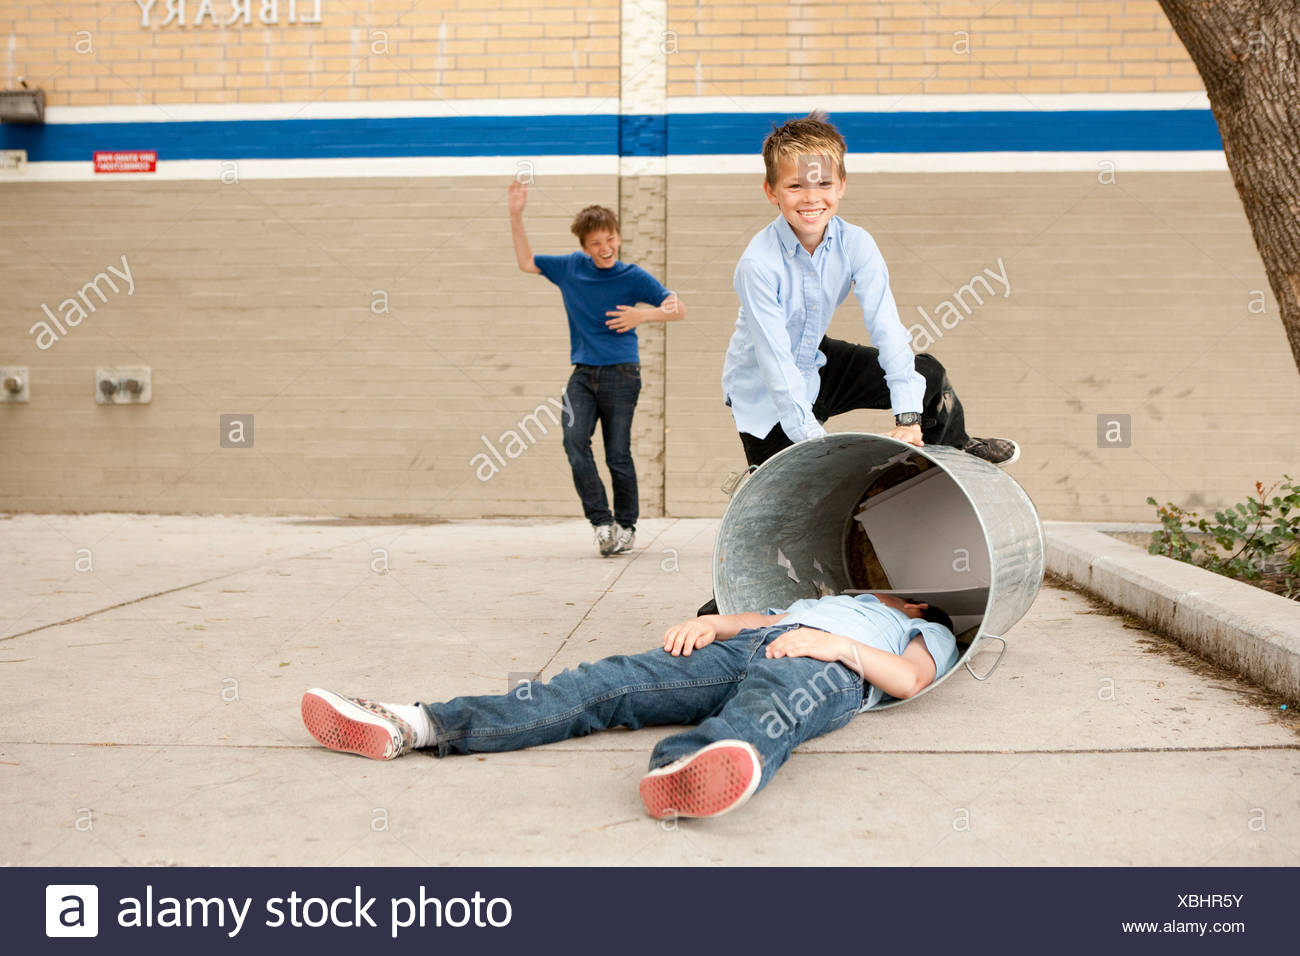 Two boys bullying another, one boy in dustbin - Stock Image